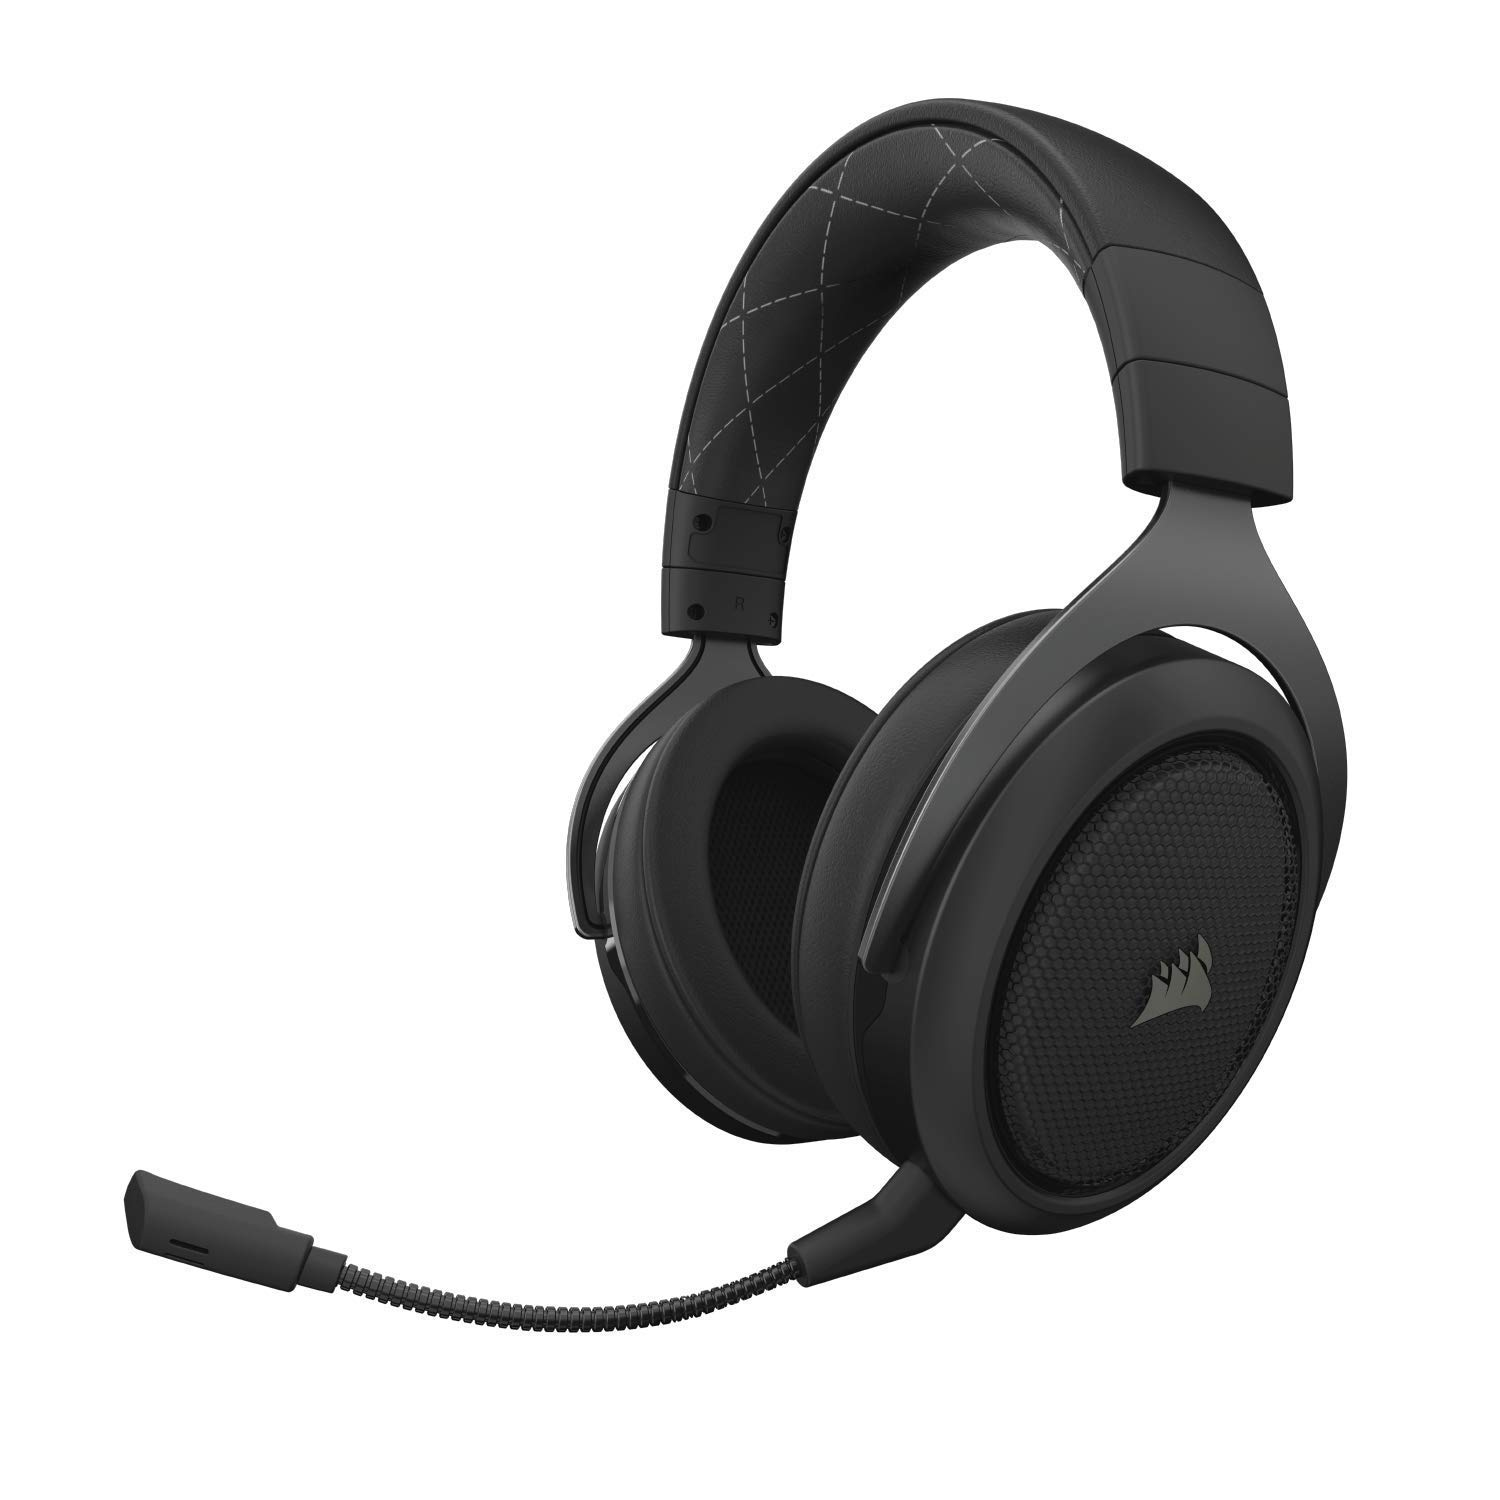 CORSAIR HS70 Wireless Gaming Headset - 7.1 Surround Sound Headphones for PC - Discord Certified - 50mm Drivers - Carbon (Renewed) by Corsair